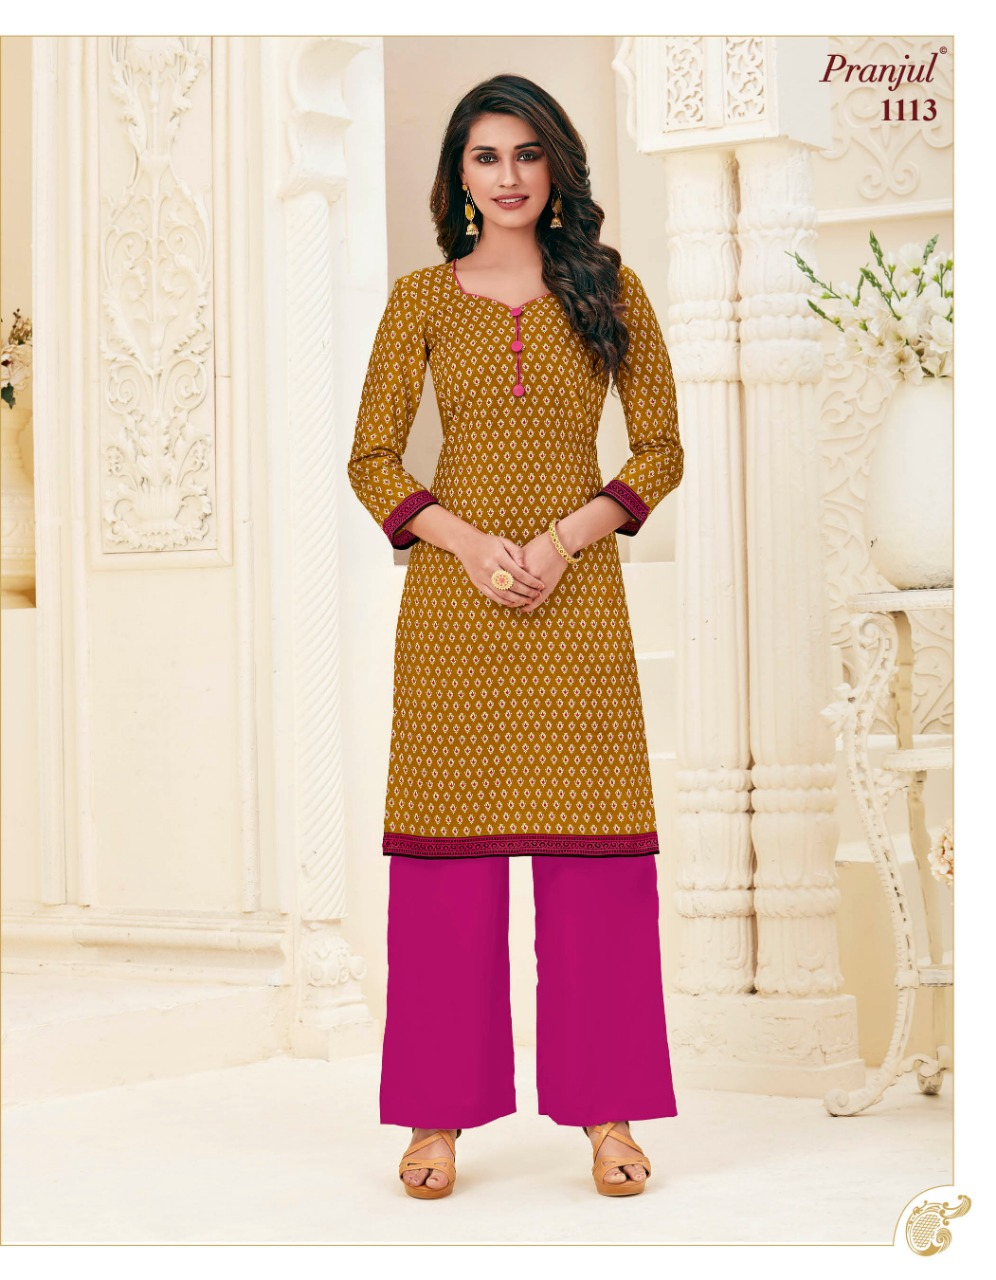 Pranjul Pari Vol 1 Kurti Wholesale Catalog 20 Pcs 15 - Pranjul Pari Vol 1 Kurti Wholesale Catalog 20 Pcs